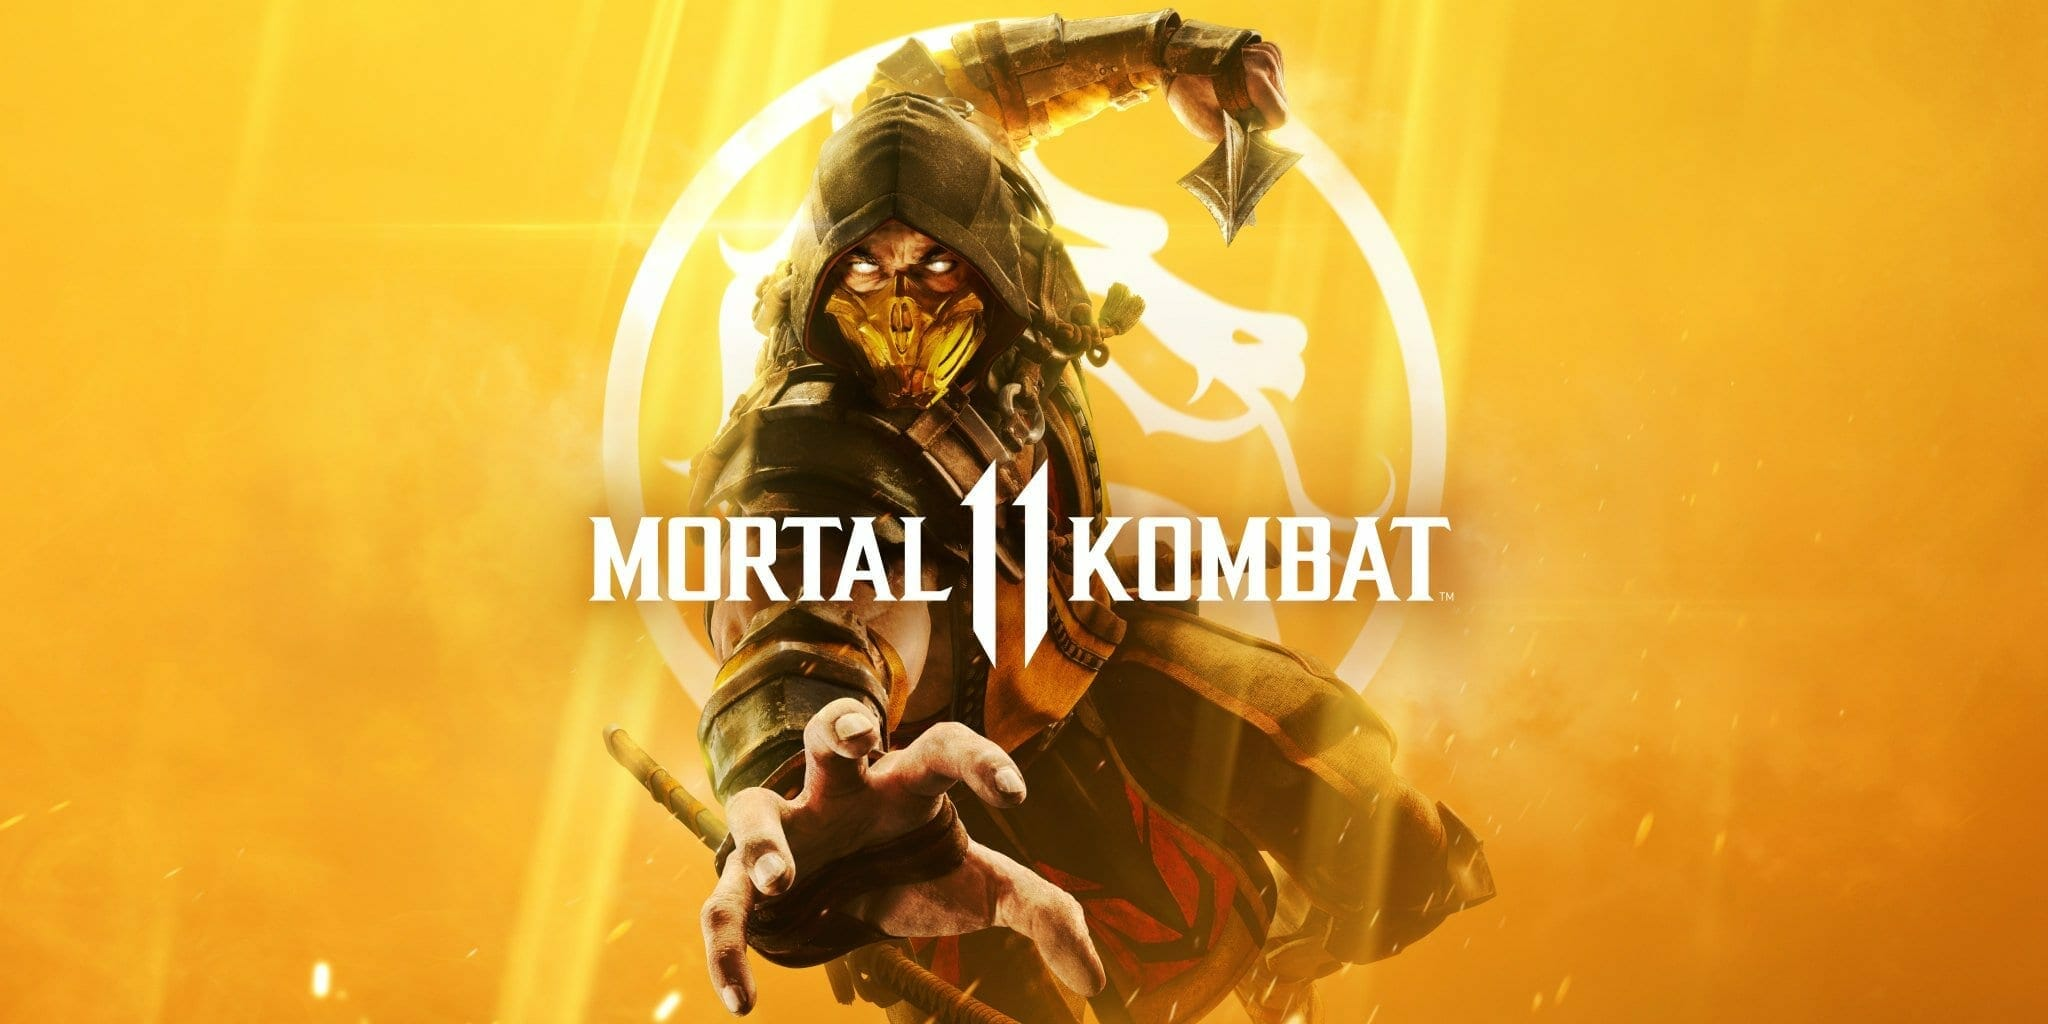 'Mortal Kombat 11' : Shang Tsung revealed as the First DLC Character